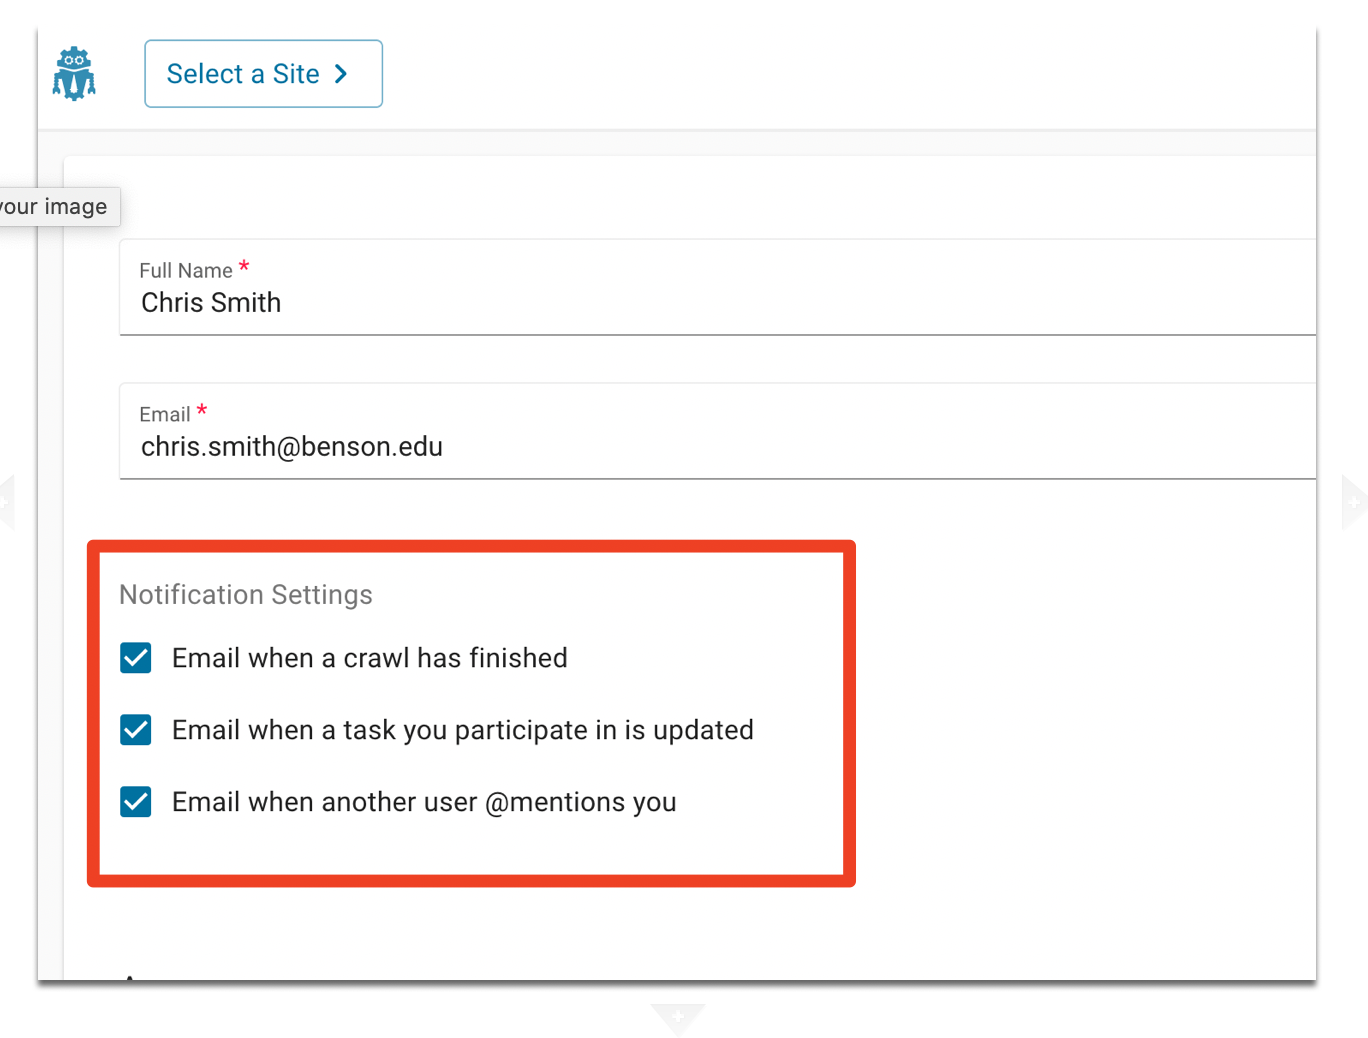 Notifications Settings are after the Email input option.